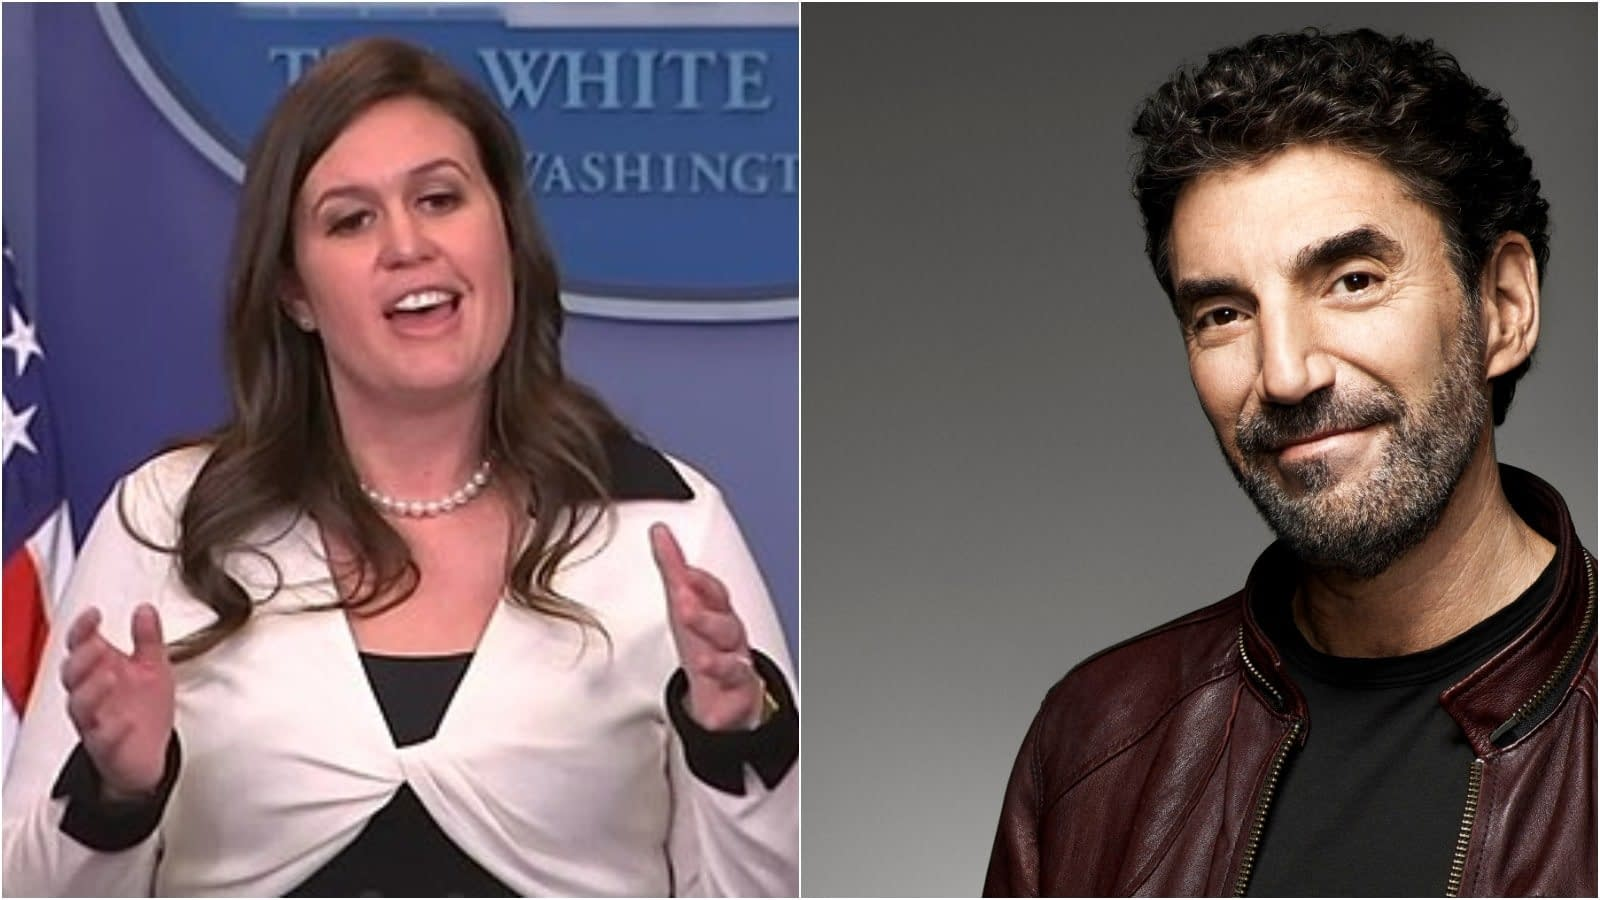 'Big Bang Theory' Creator Chuck Lorre Doubts Sarah Huckabee Sanders Has God on Speed Dial